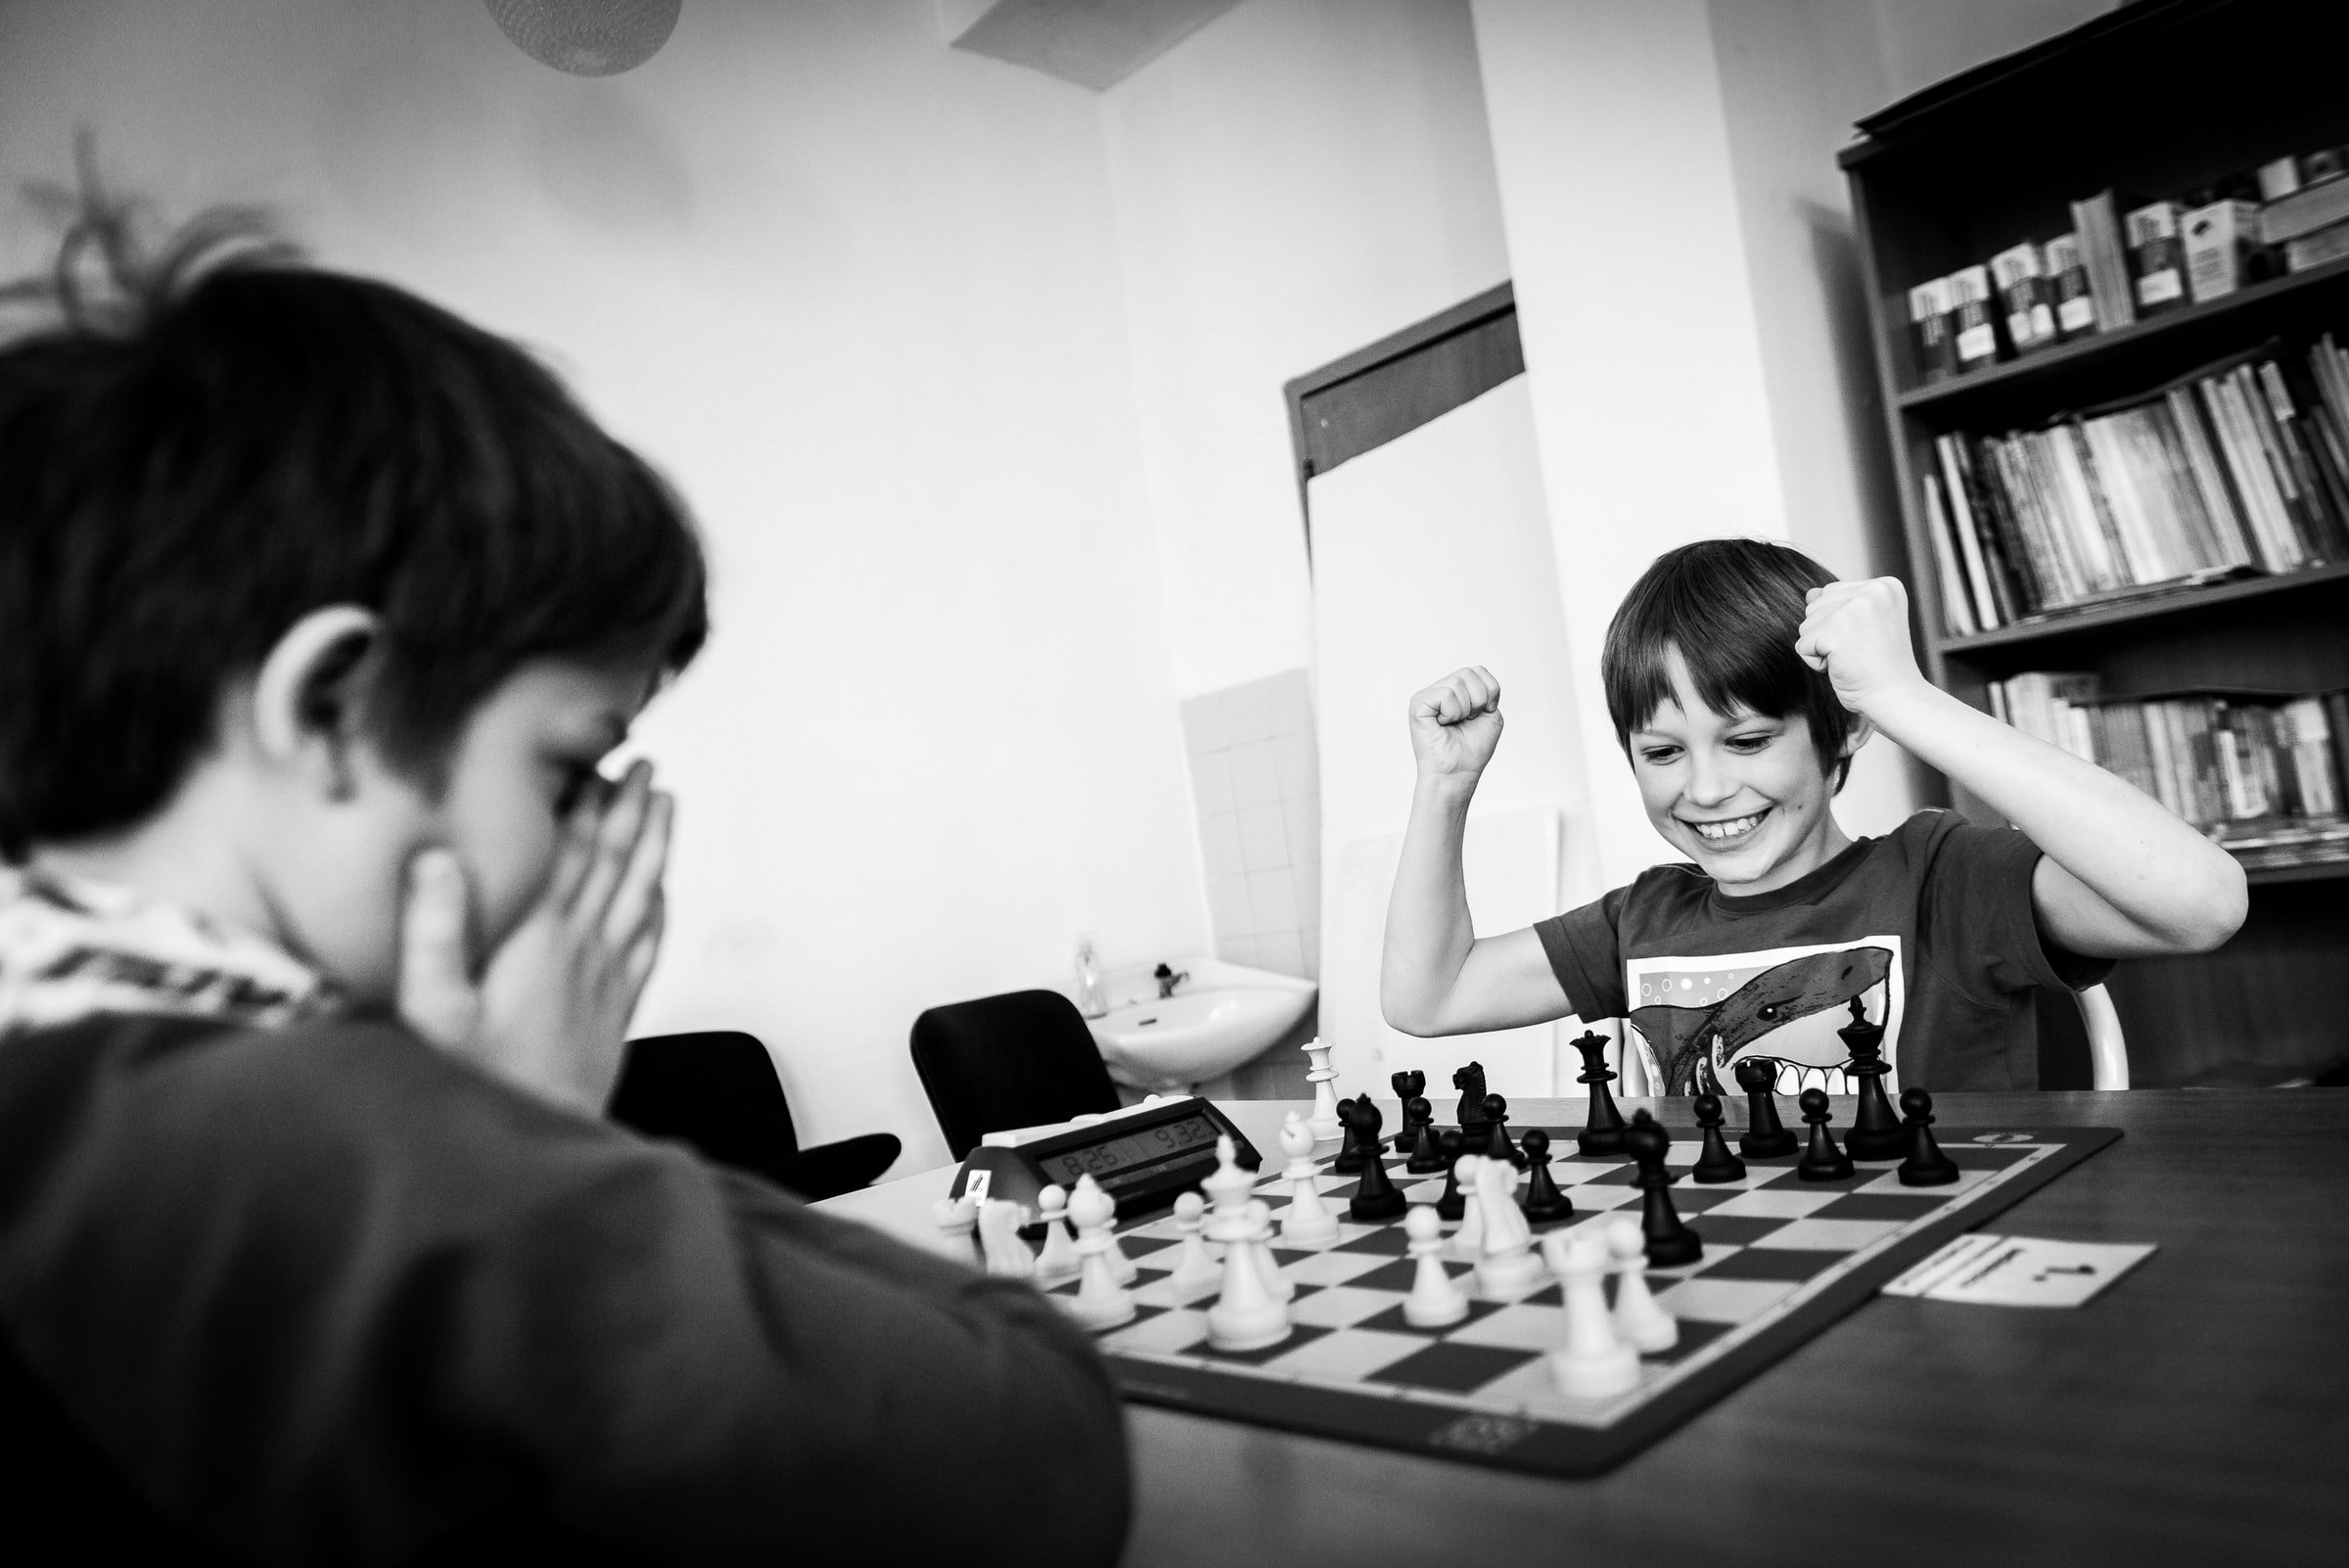 Student enjoying playing chess as they win